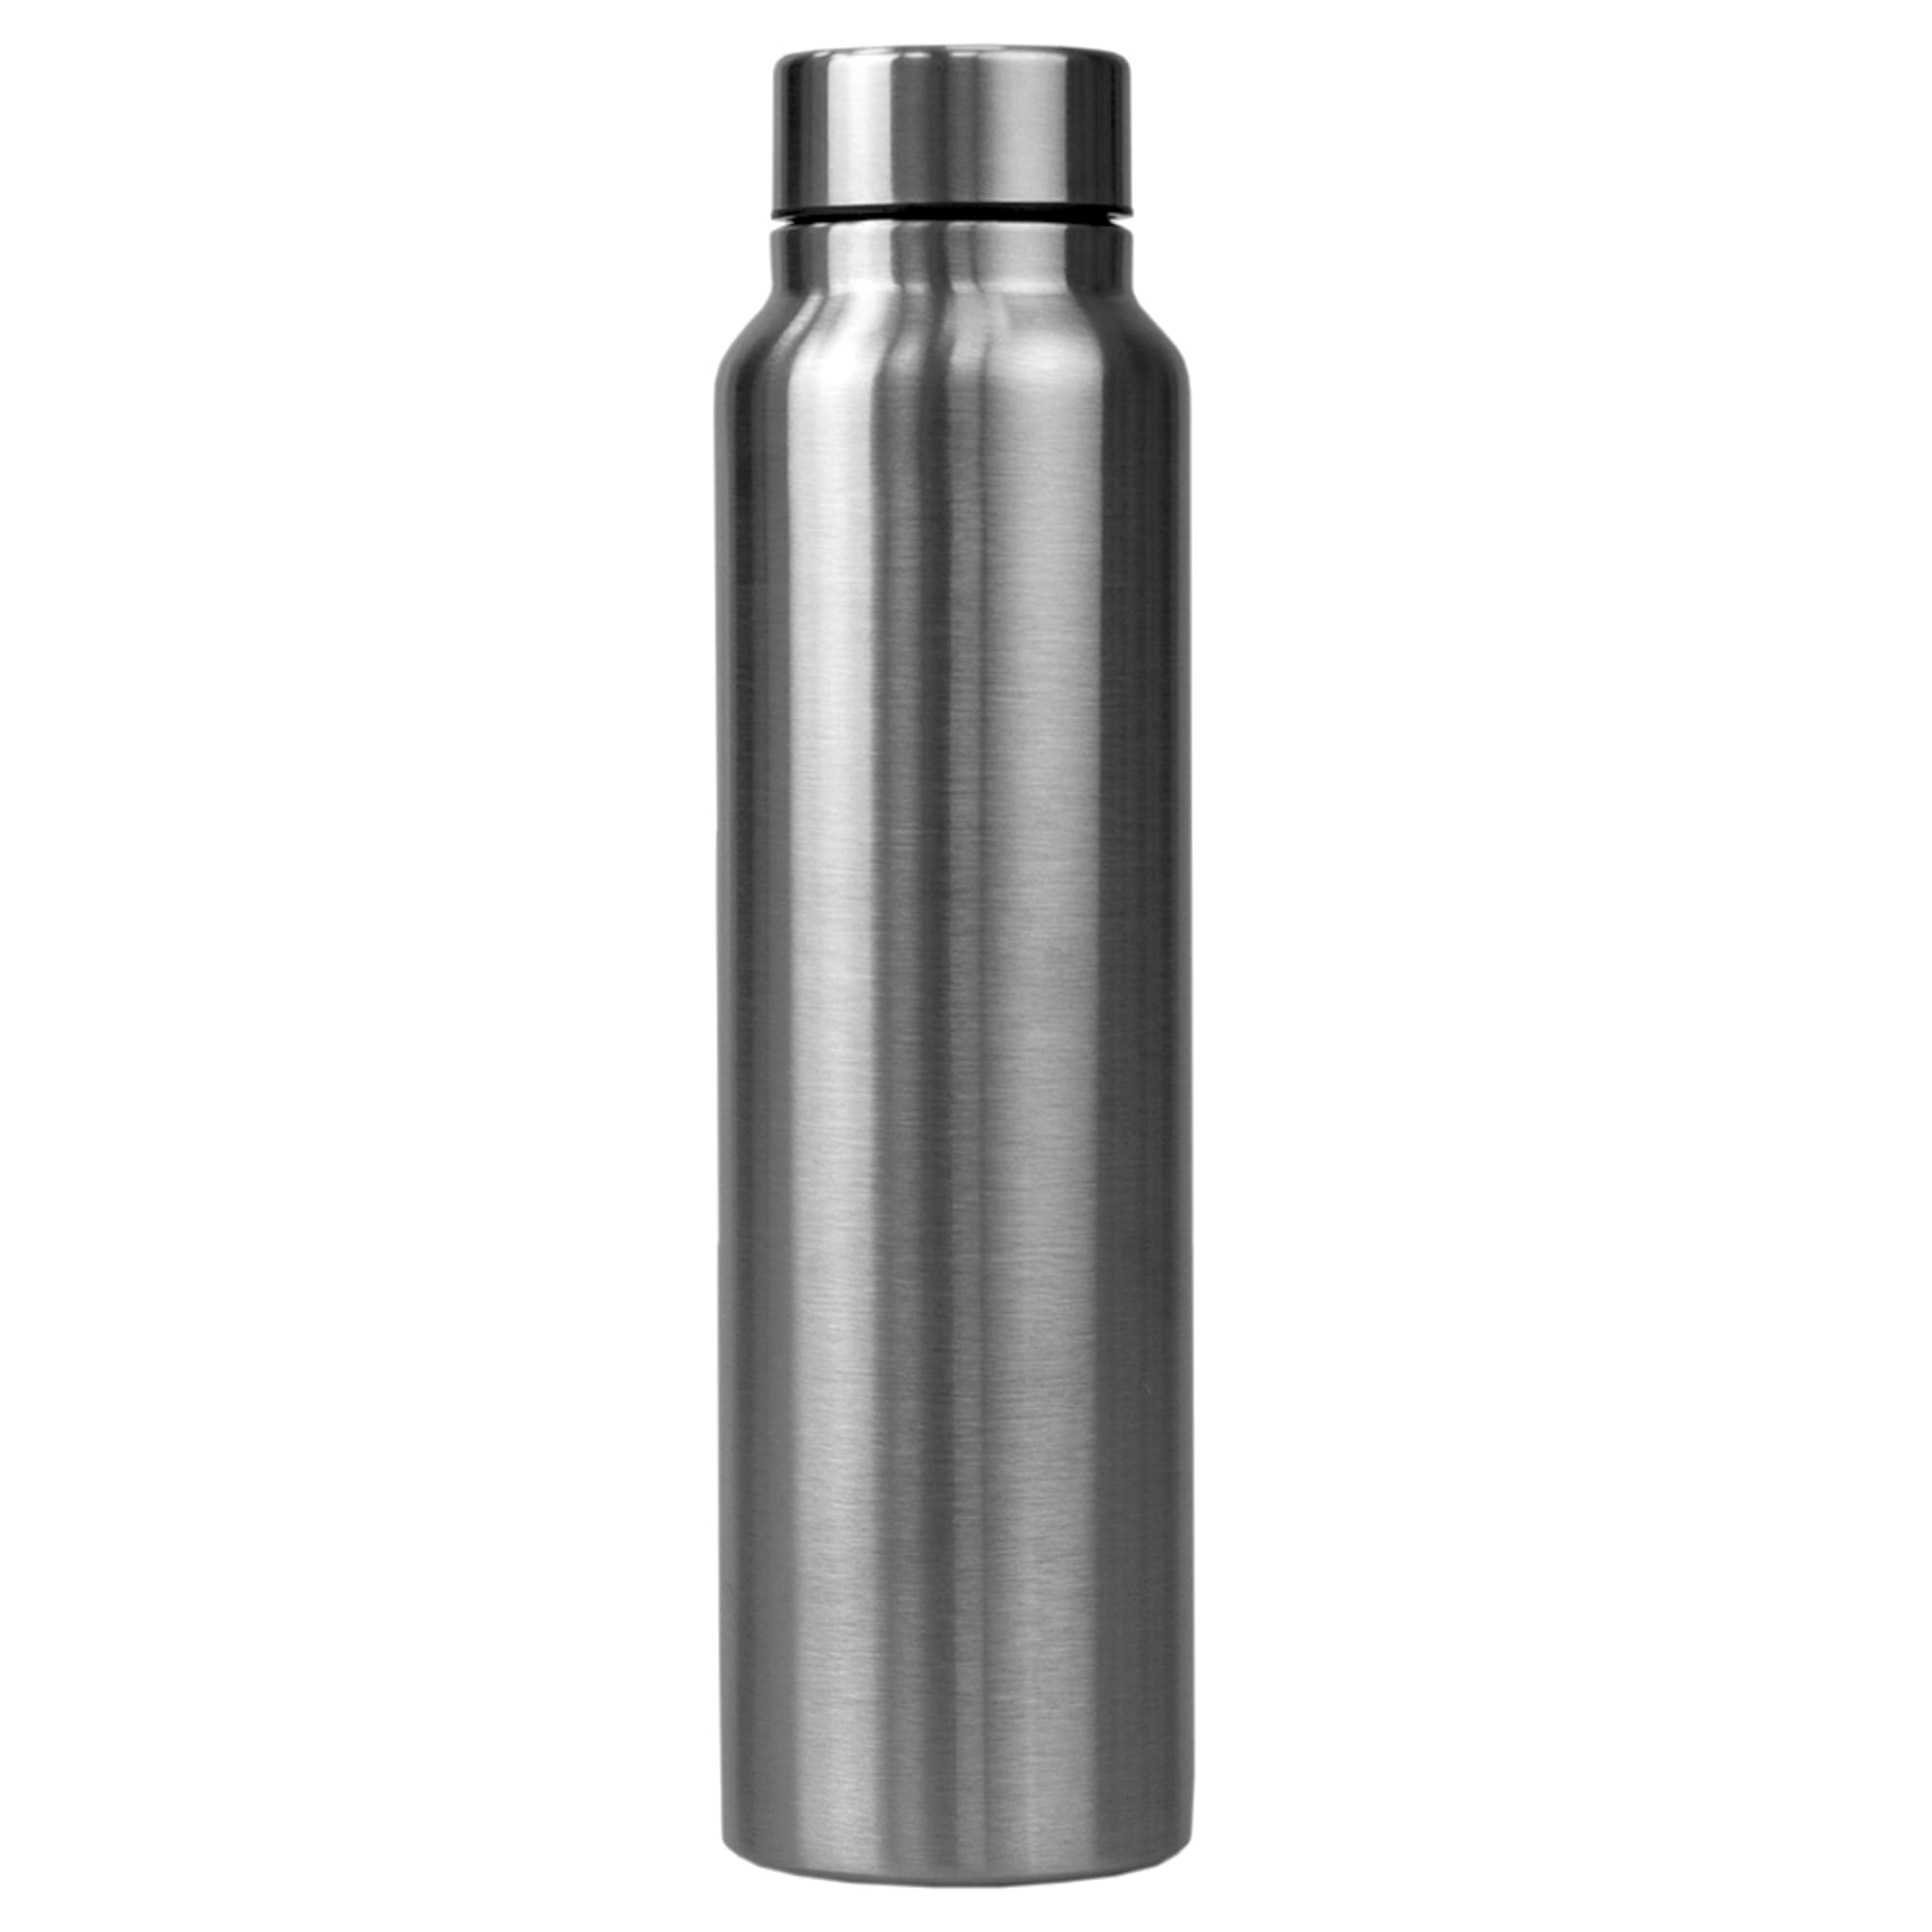 Altai 30 oz. Stainless Steel Travel Bottle, Silver